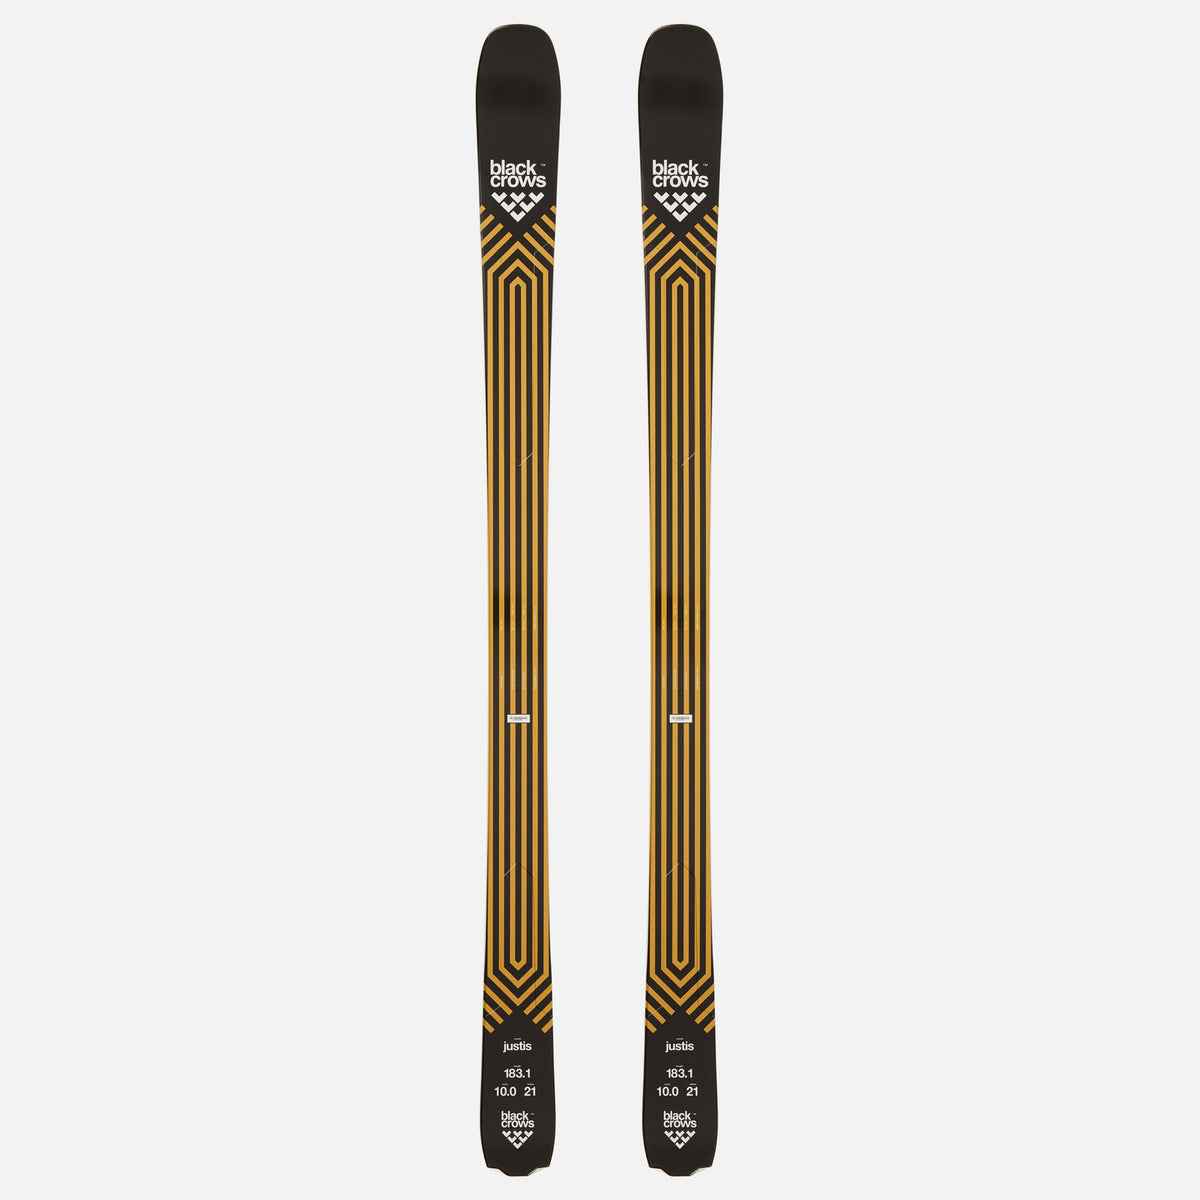 Black Crows JUSTIS Skis 2021